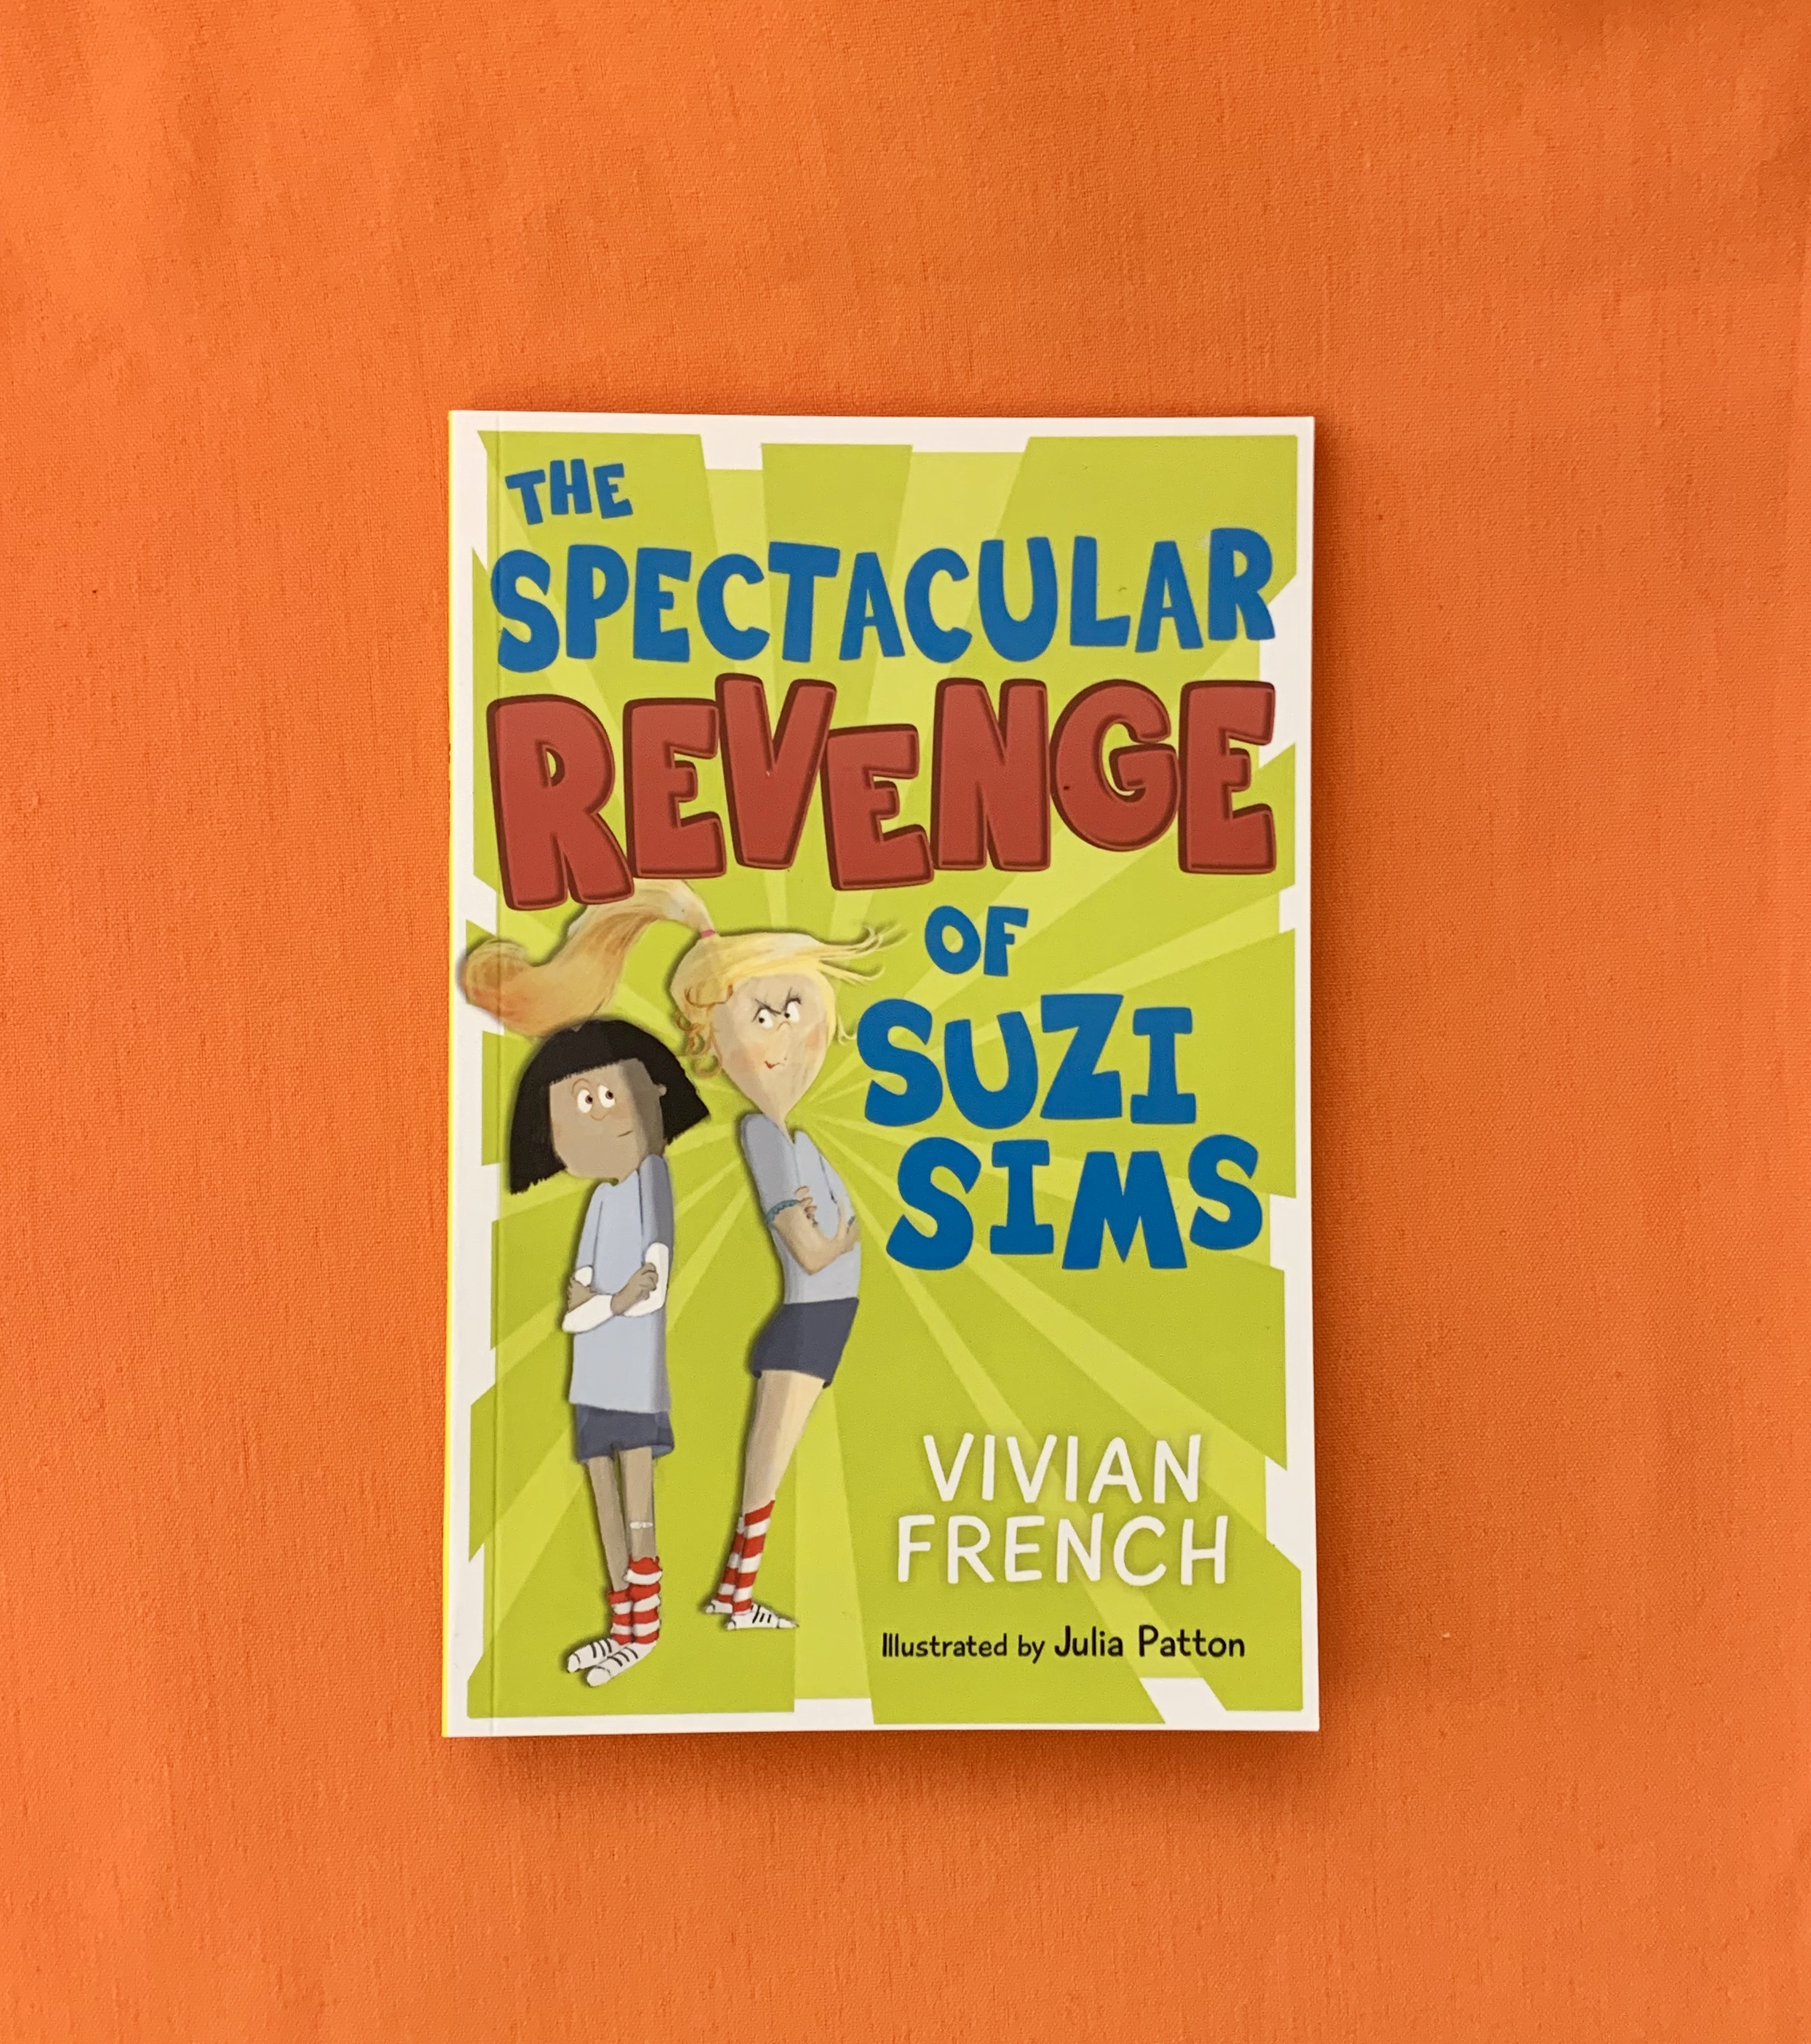 Photograph of The Spectacular Revenge of Suzi Sims